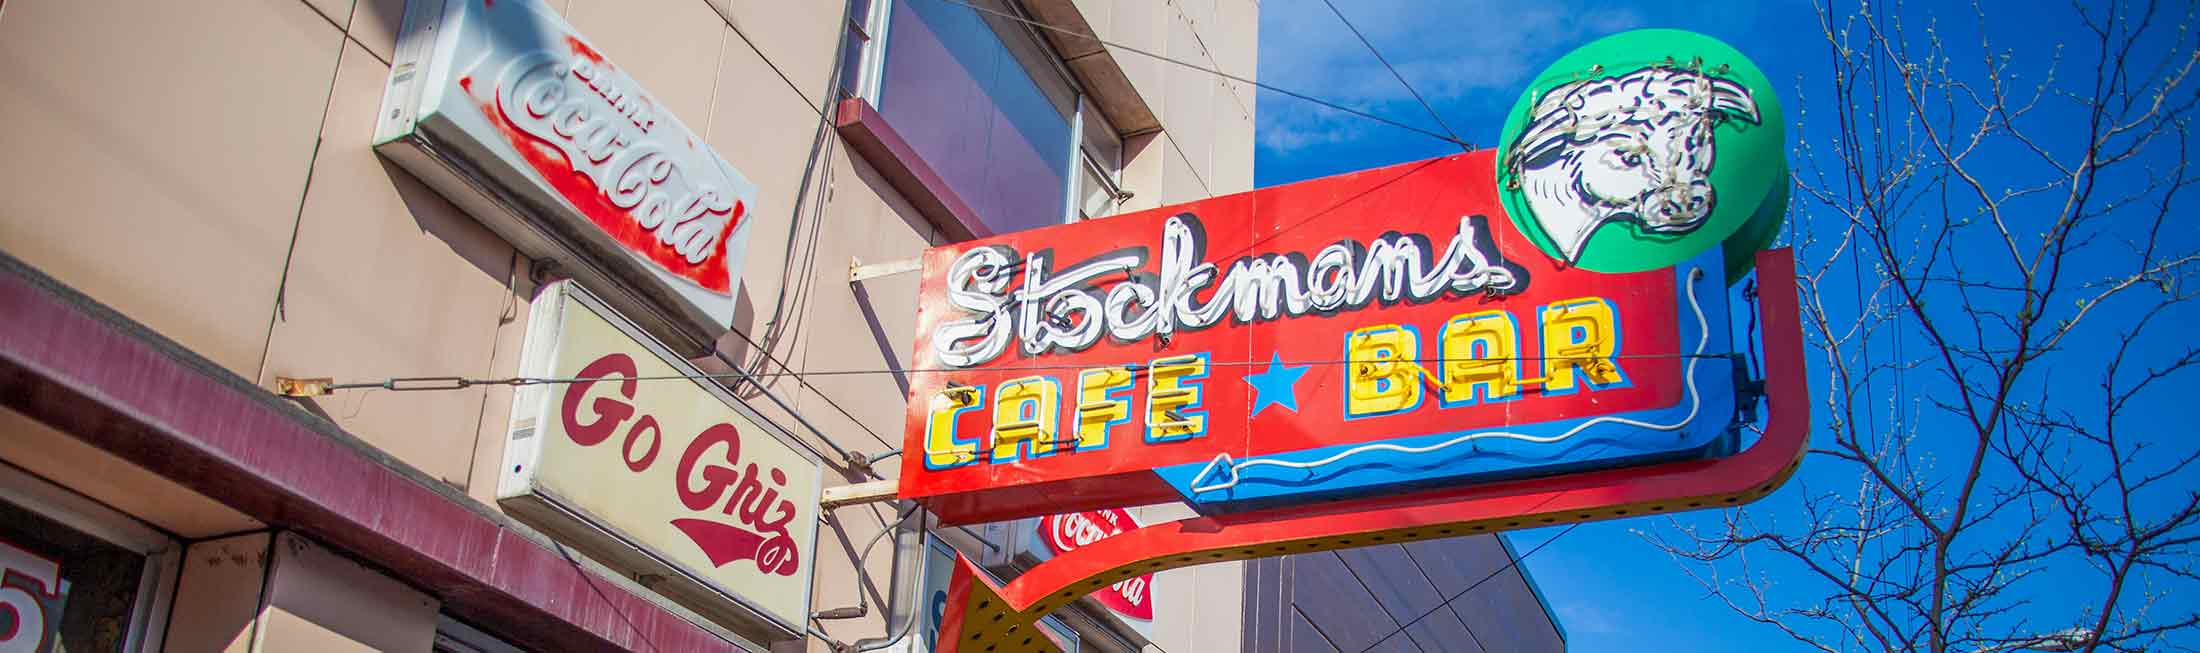 Stockman's Bar and Cafe in Downtown